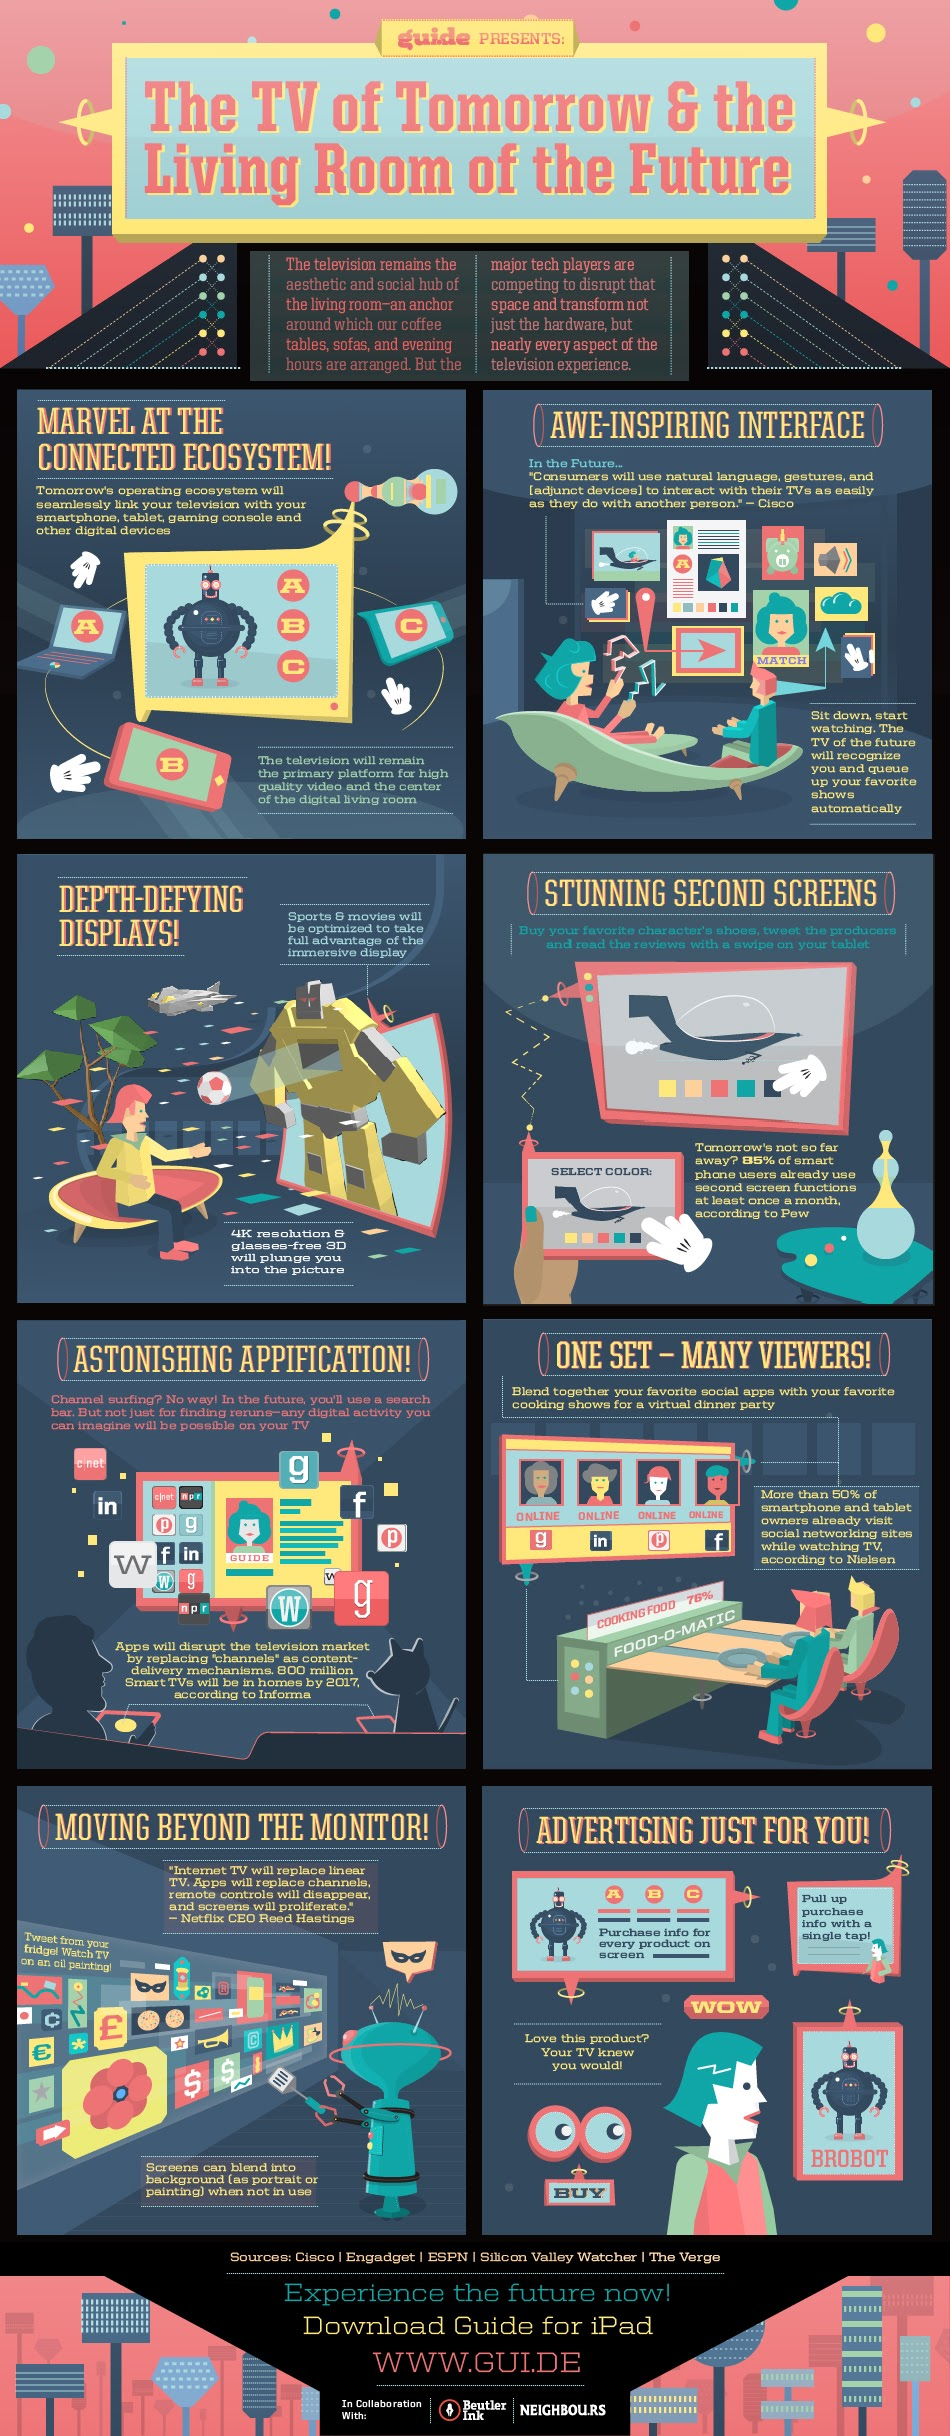 The Future Of Television And Living Room #Infographic